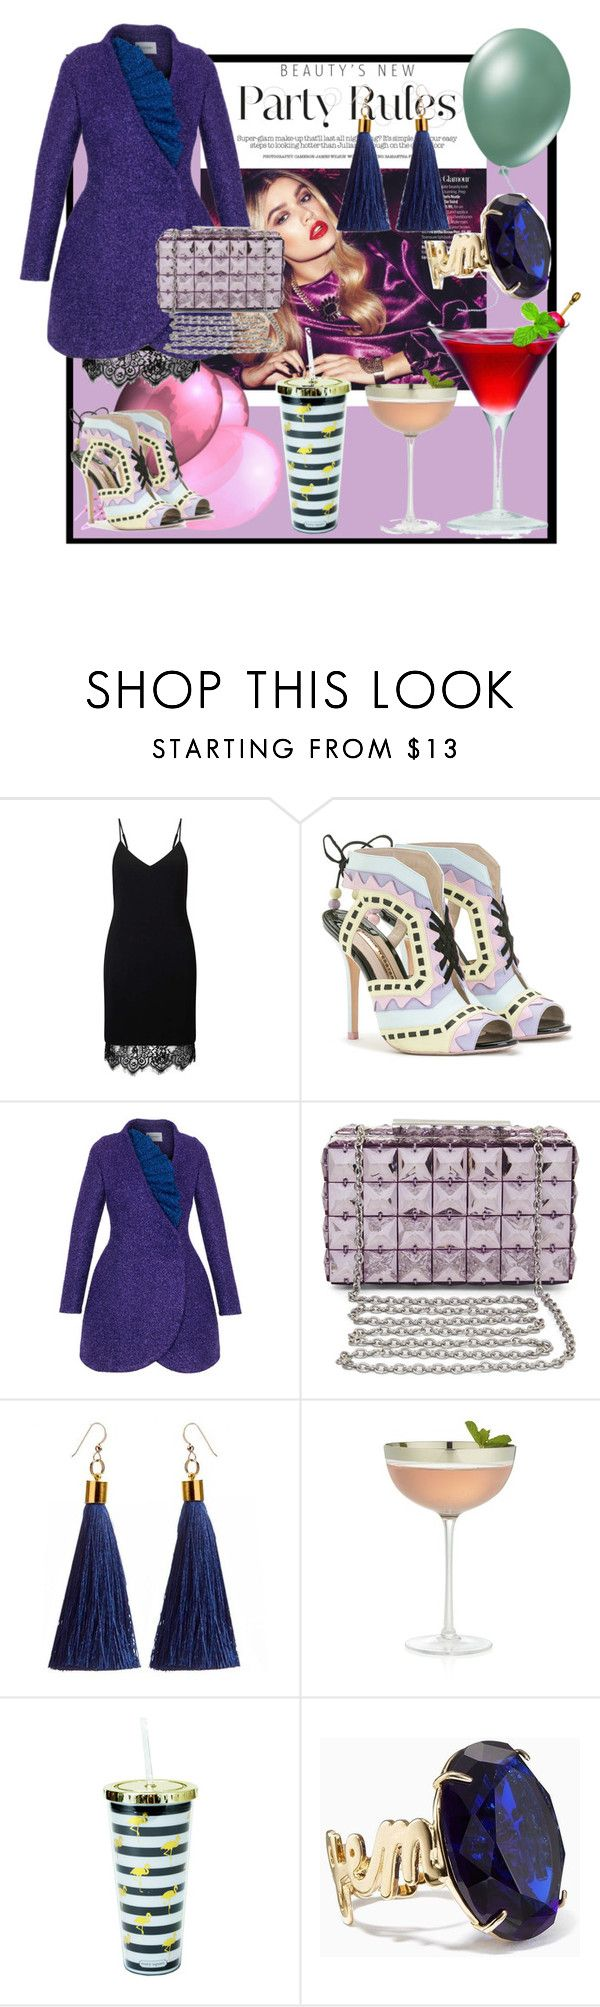 """""""Party rules"""" by teresa-ramil ❤ liked on Polyvore featuring Miss Selfridge, Sophia Webster, Rasario, BCBGMAXAZRIA, Crate and Barrel and Kate Spade"""